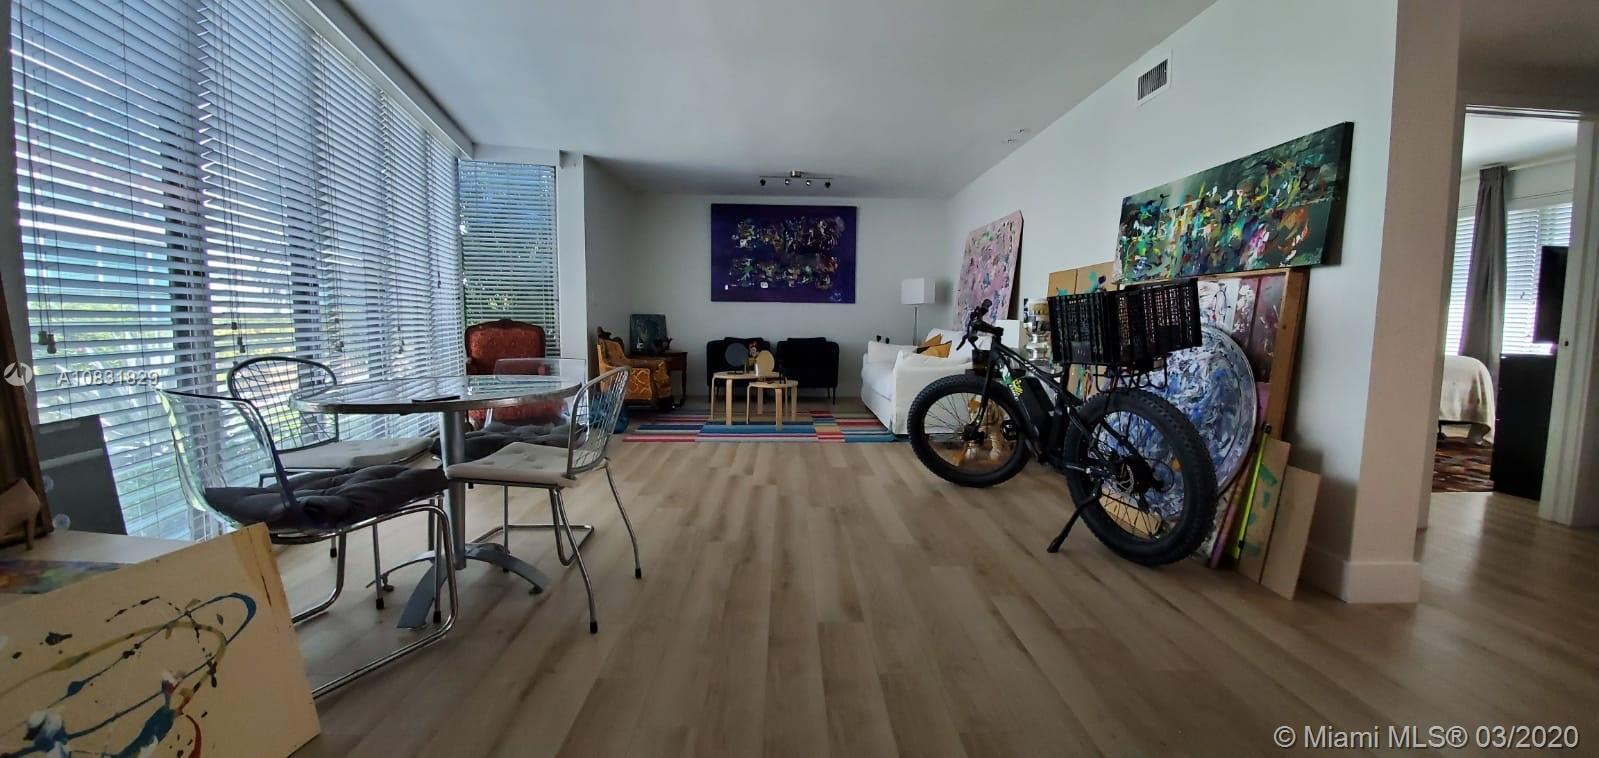 Spectacular and spacious 1B   1B totally redone in the exclusive City of Bal Harbour. Unit has been